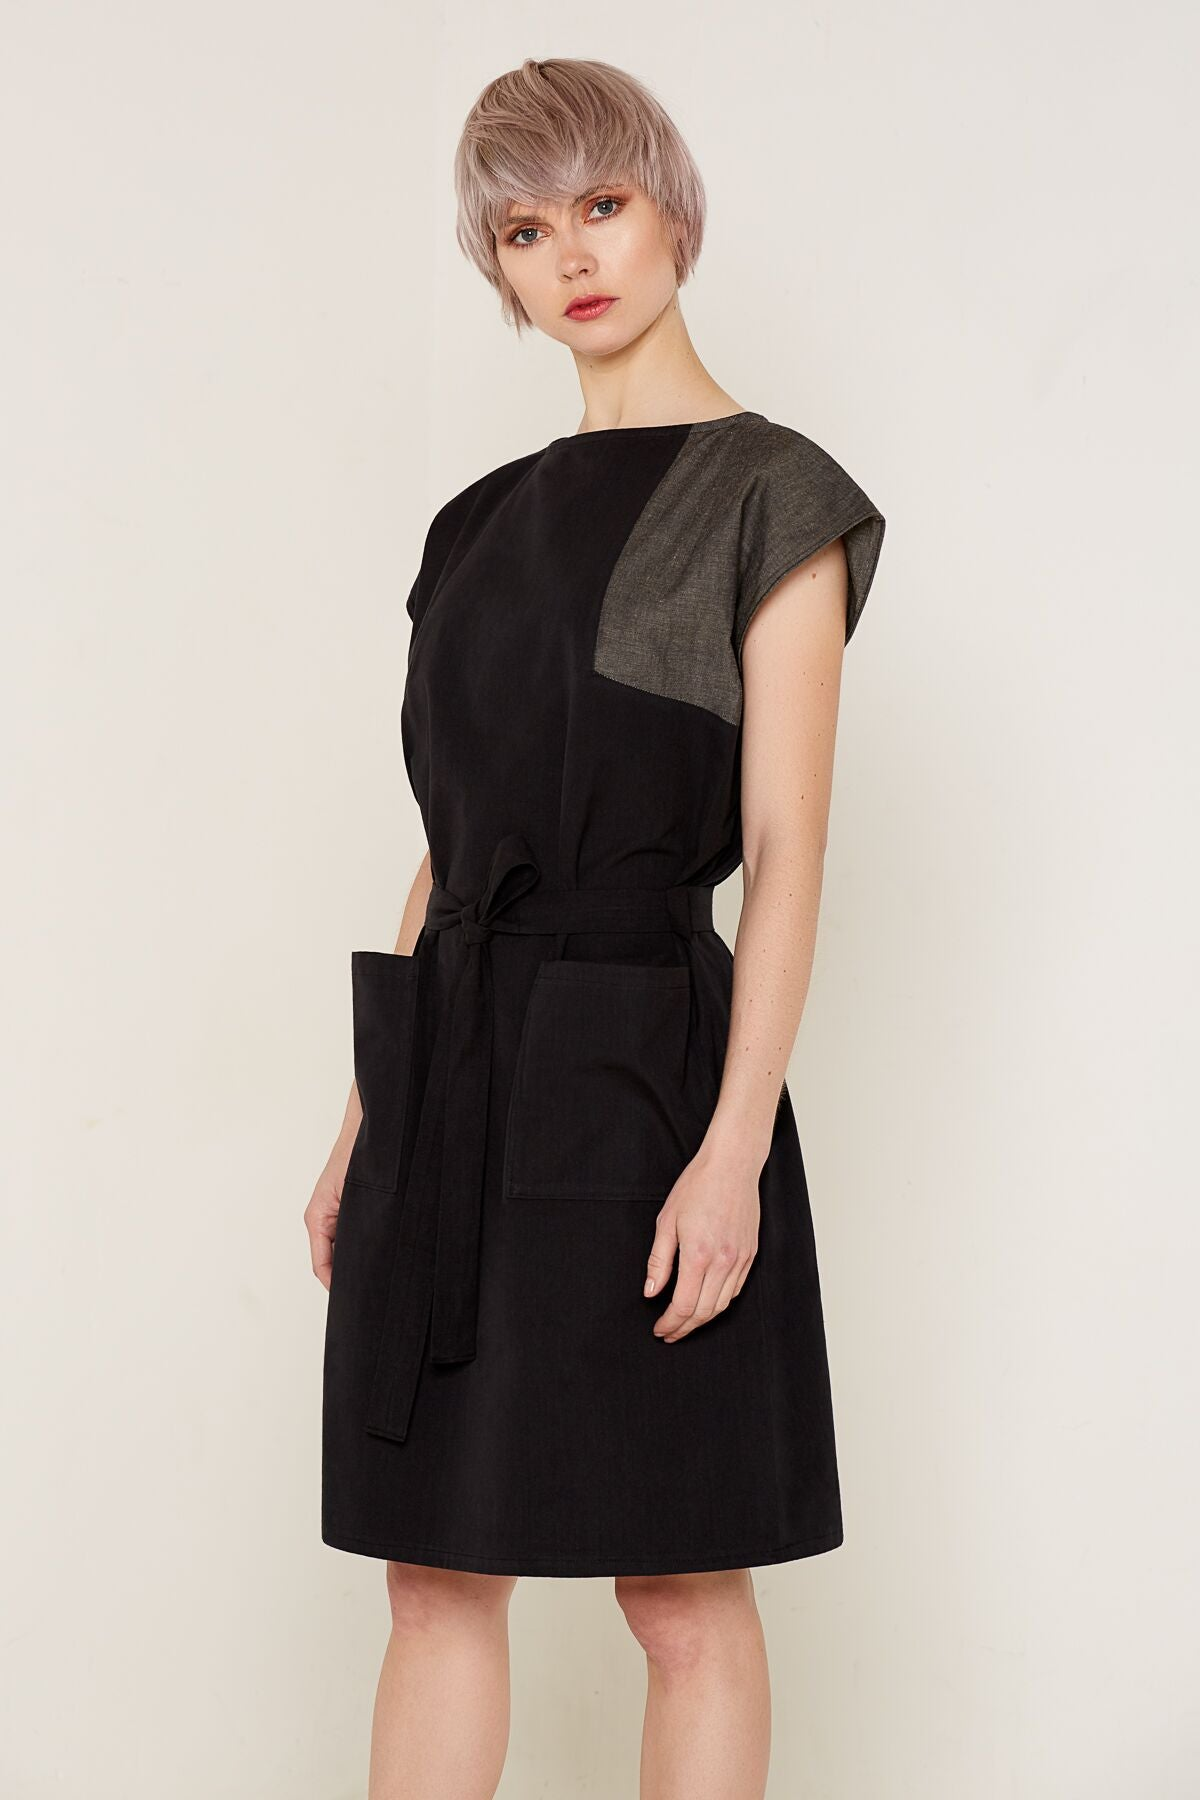 Elara Dress - The Clothing LoungeBo Carter